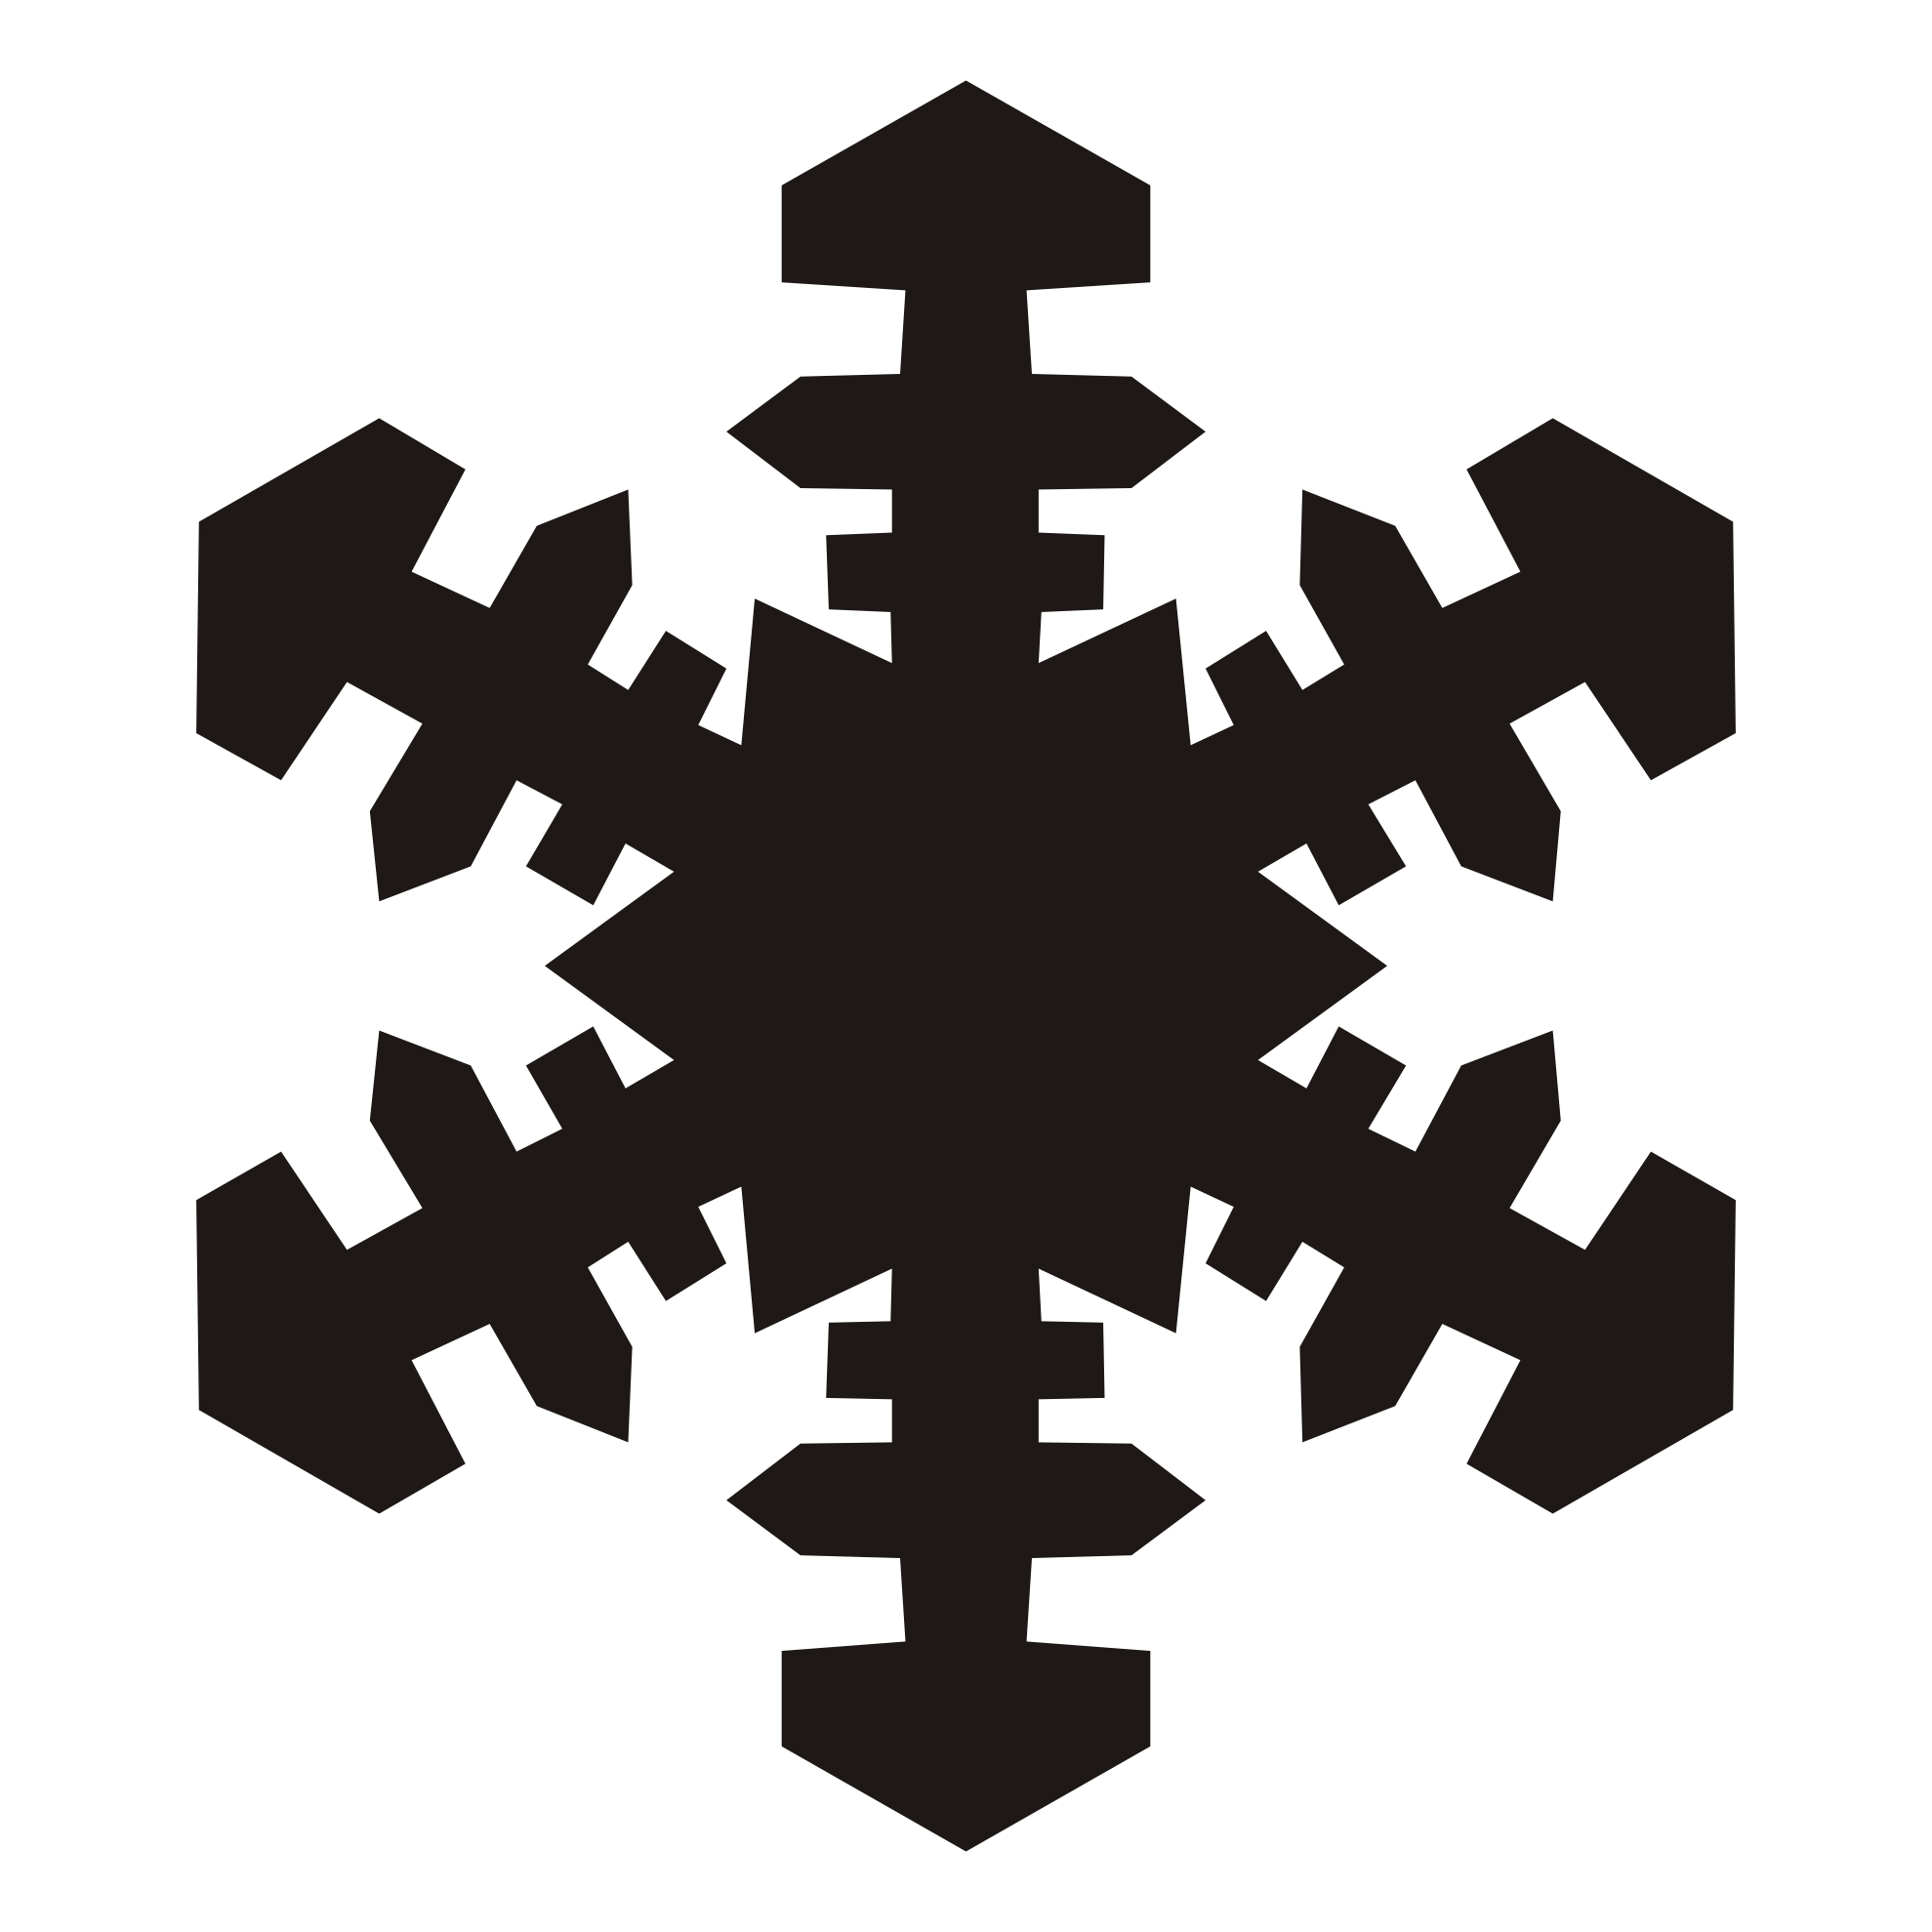 White Snowflake Clipart Png | Clipart Panda - Free Clipart Images